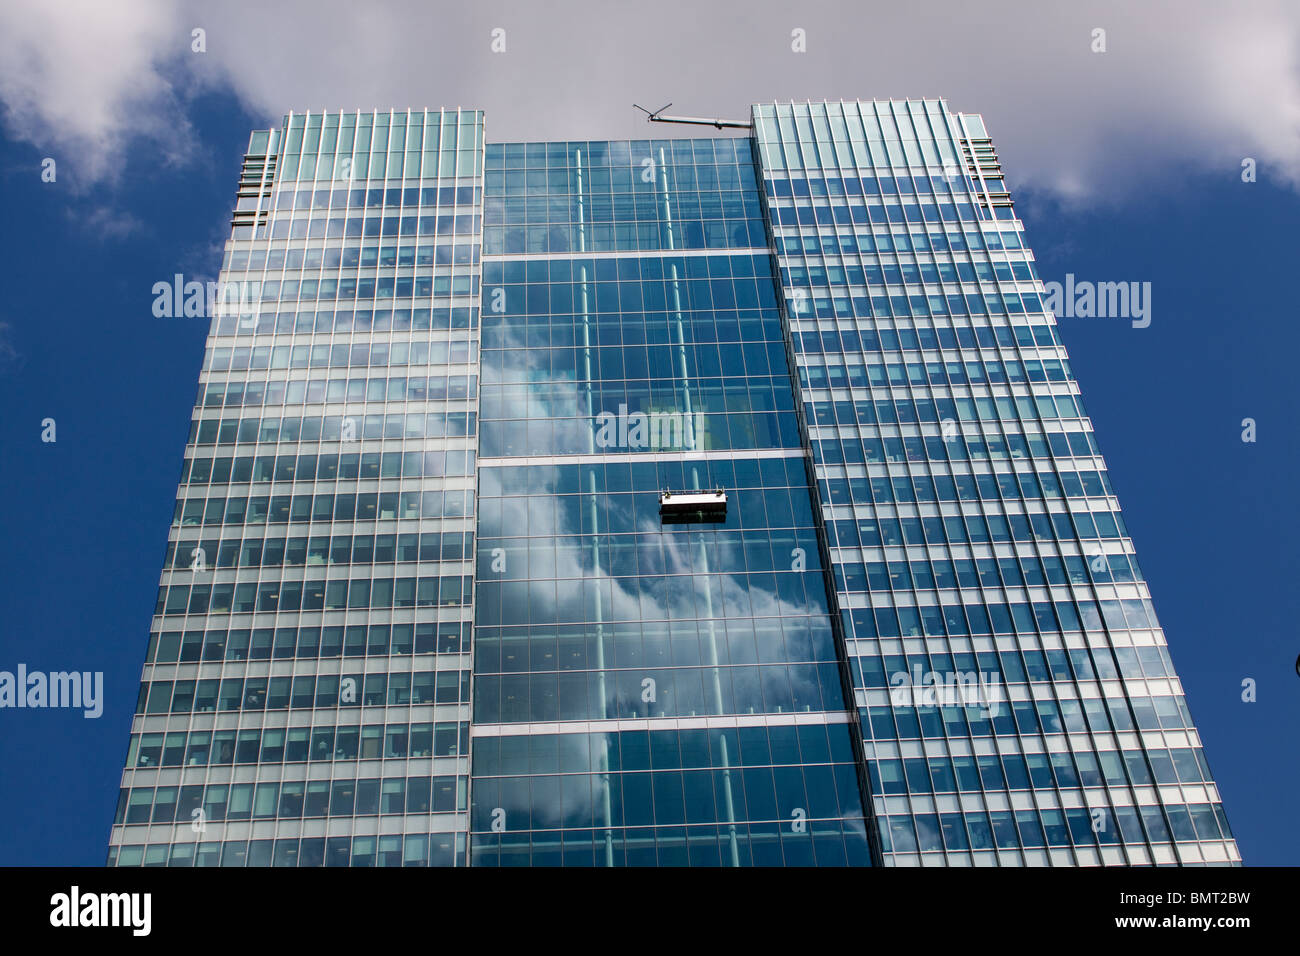 Tall Building in Londons Docklands - Stock Image